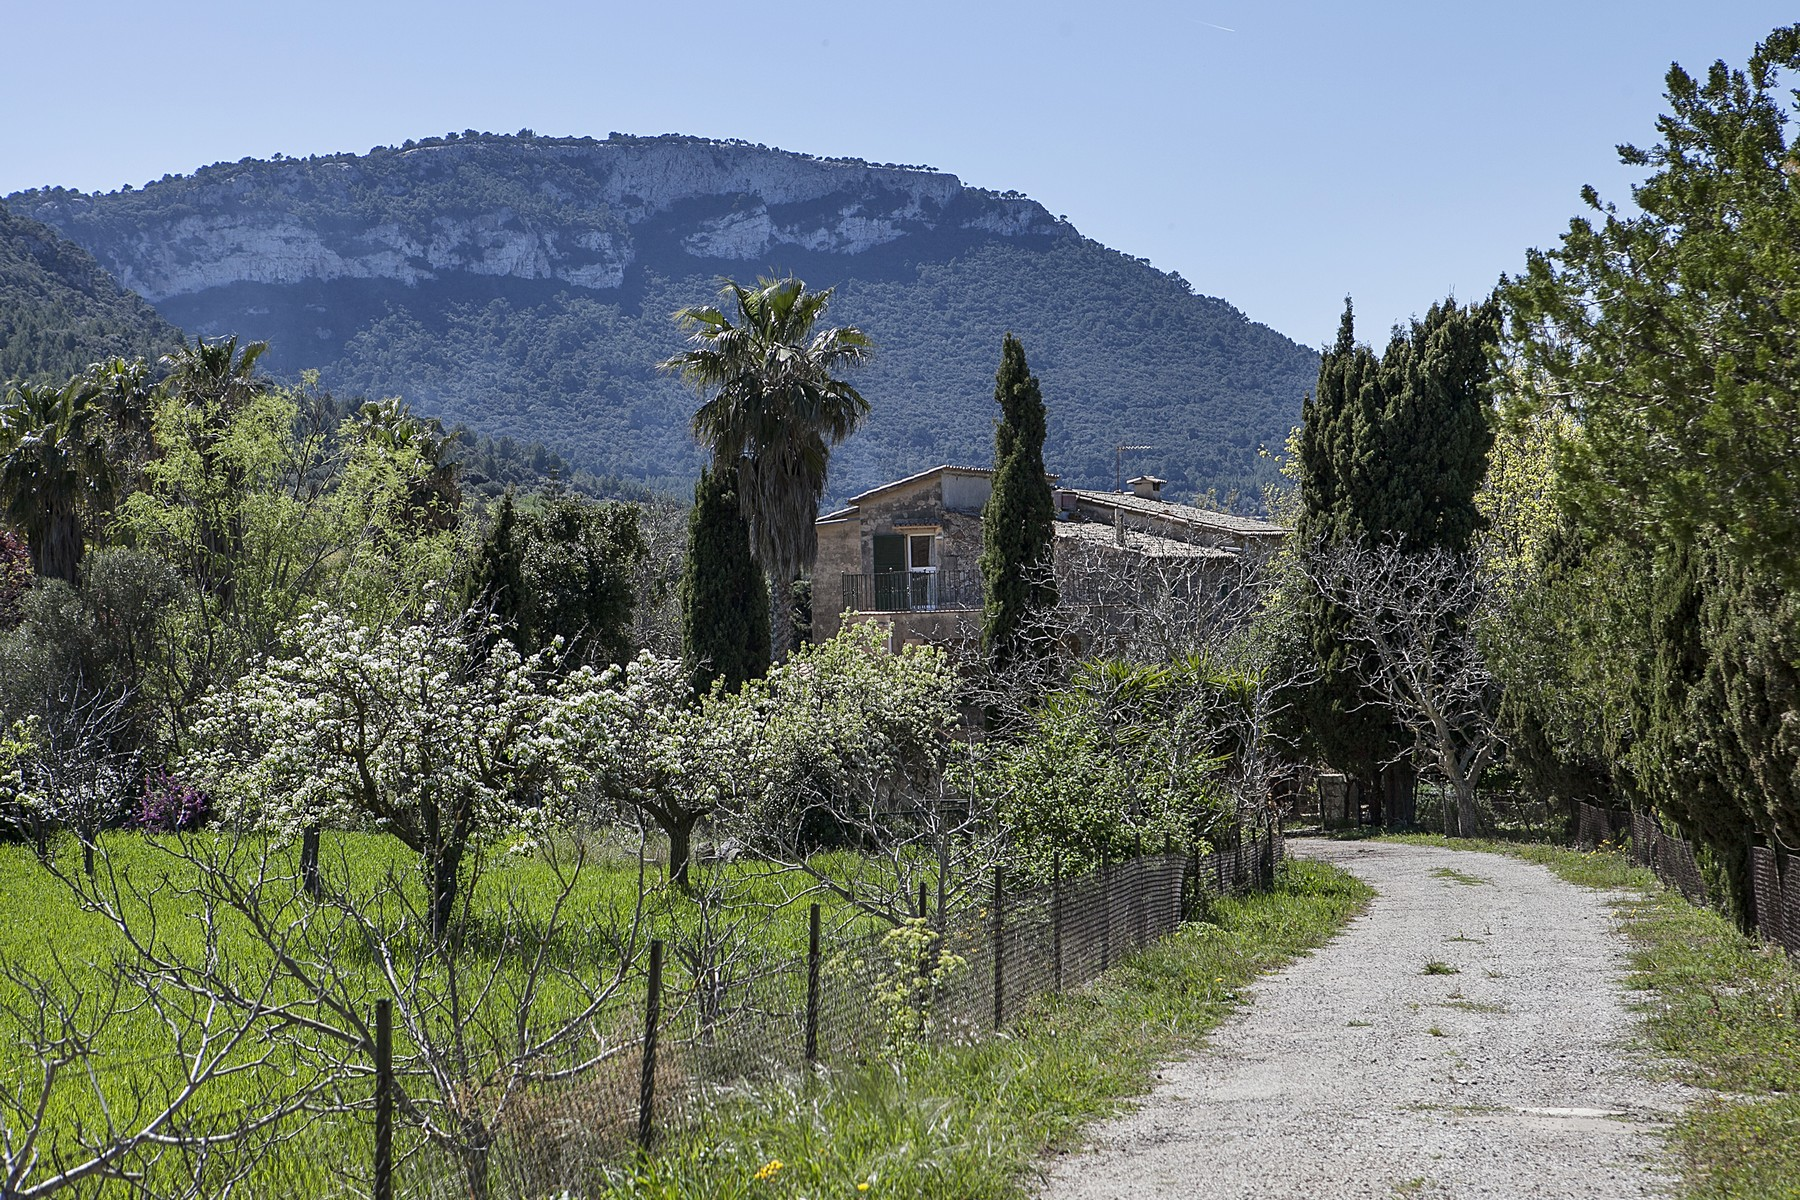 Single Family Home for Sale at Country Estate to renovate in Valldemossa Valldemossa, Balearic Islands Spain